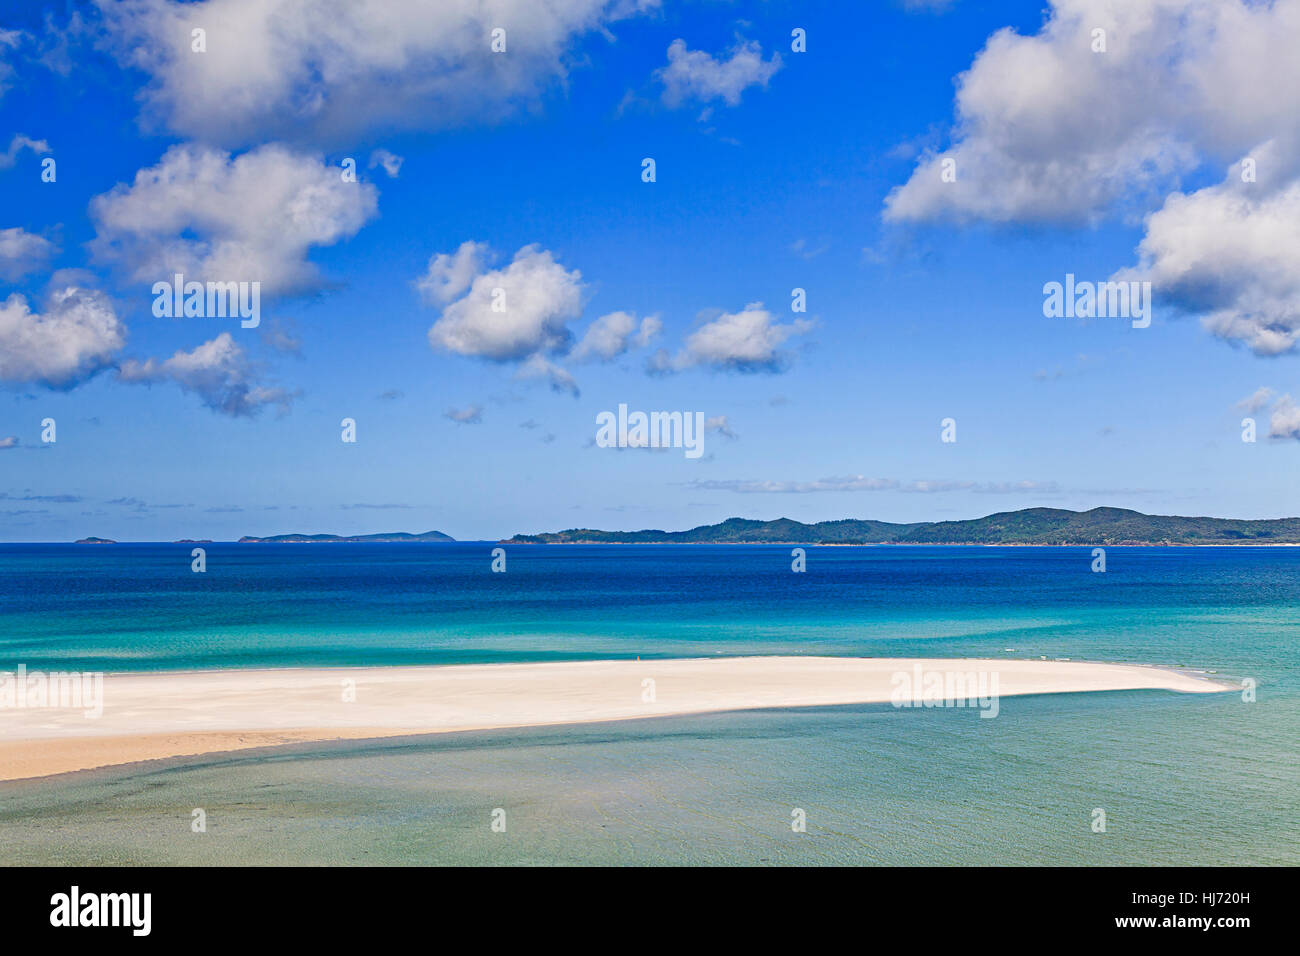 Coral sea great barrier reef whitsundays islands whitehaven beach of white silica sand and clean water on a sunny - Stock Image